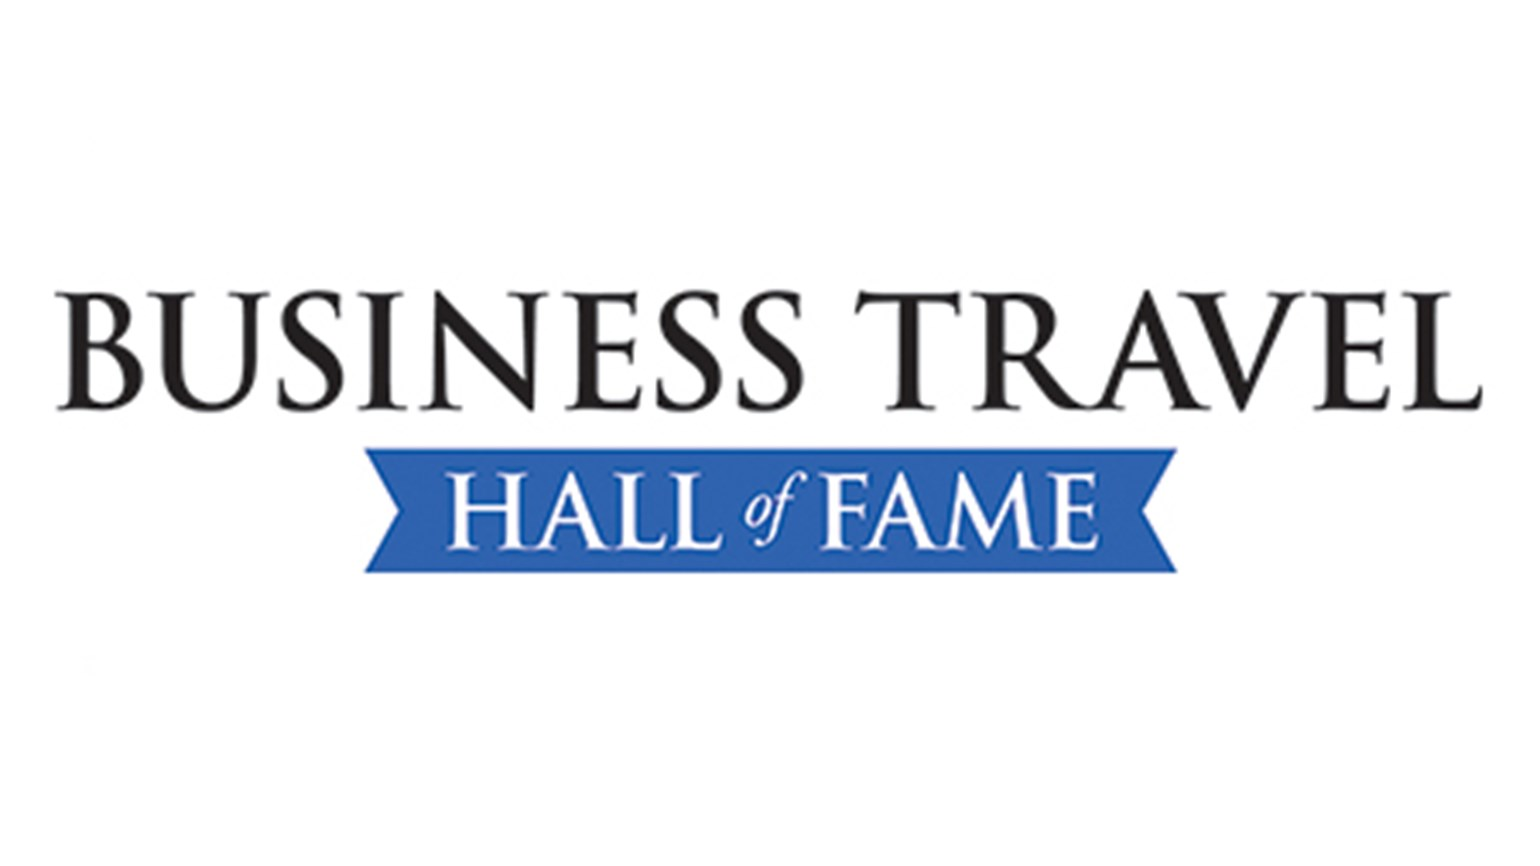 Business Travel Hall of Fame